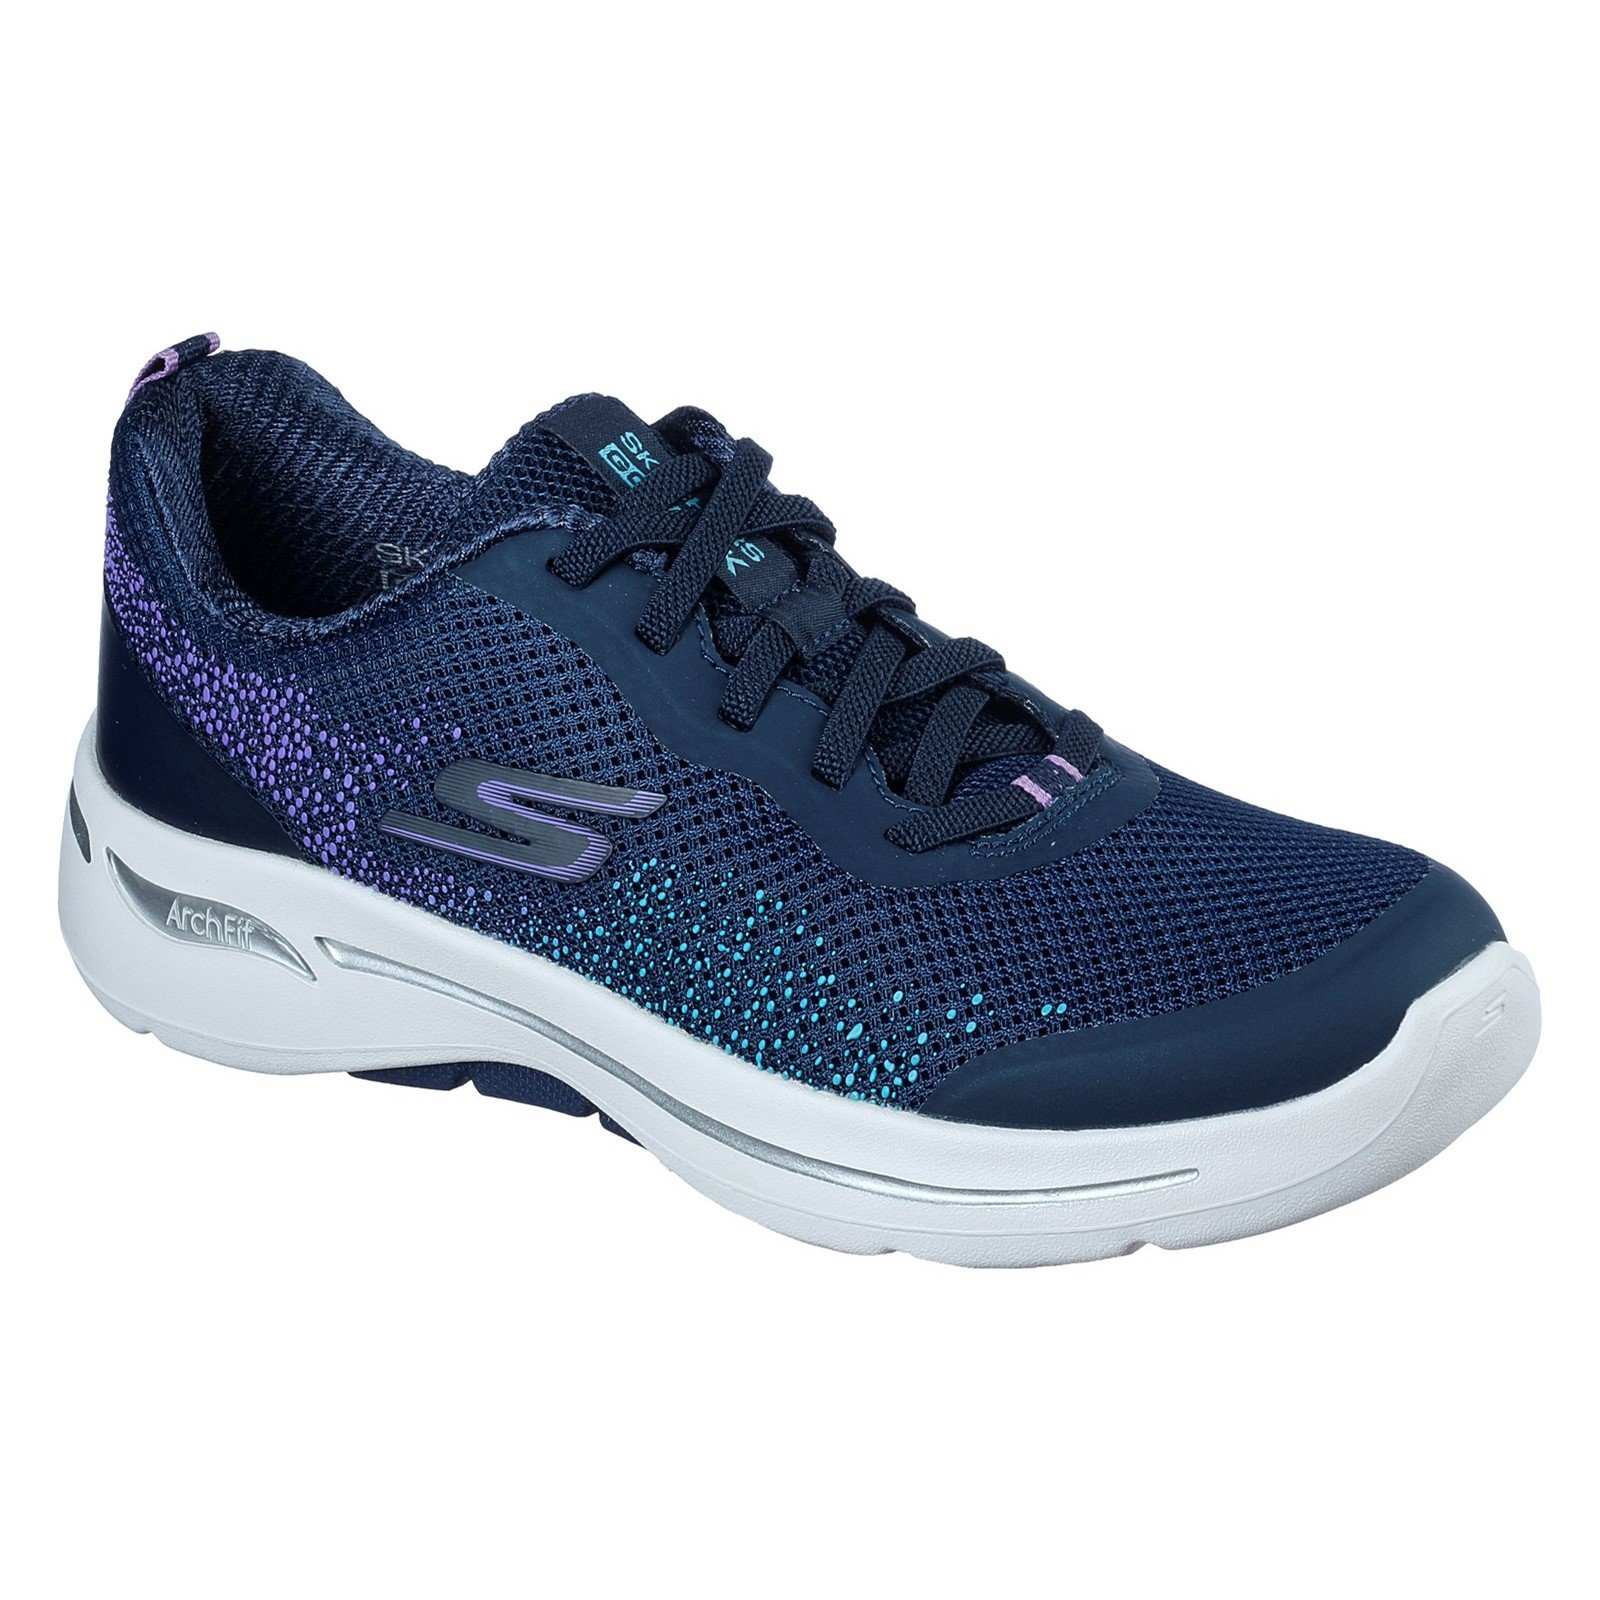 Skechers Women's Go Walk Arch Fit Flying Stars Trainer Various Colours 32841 - Navy/Lavender 5